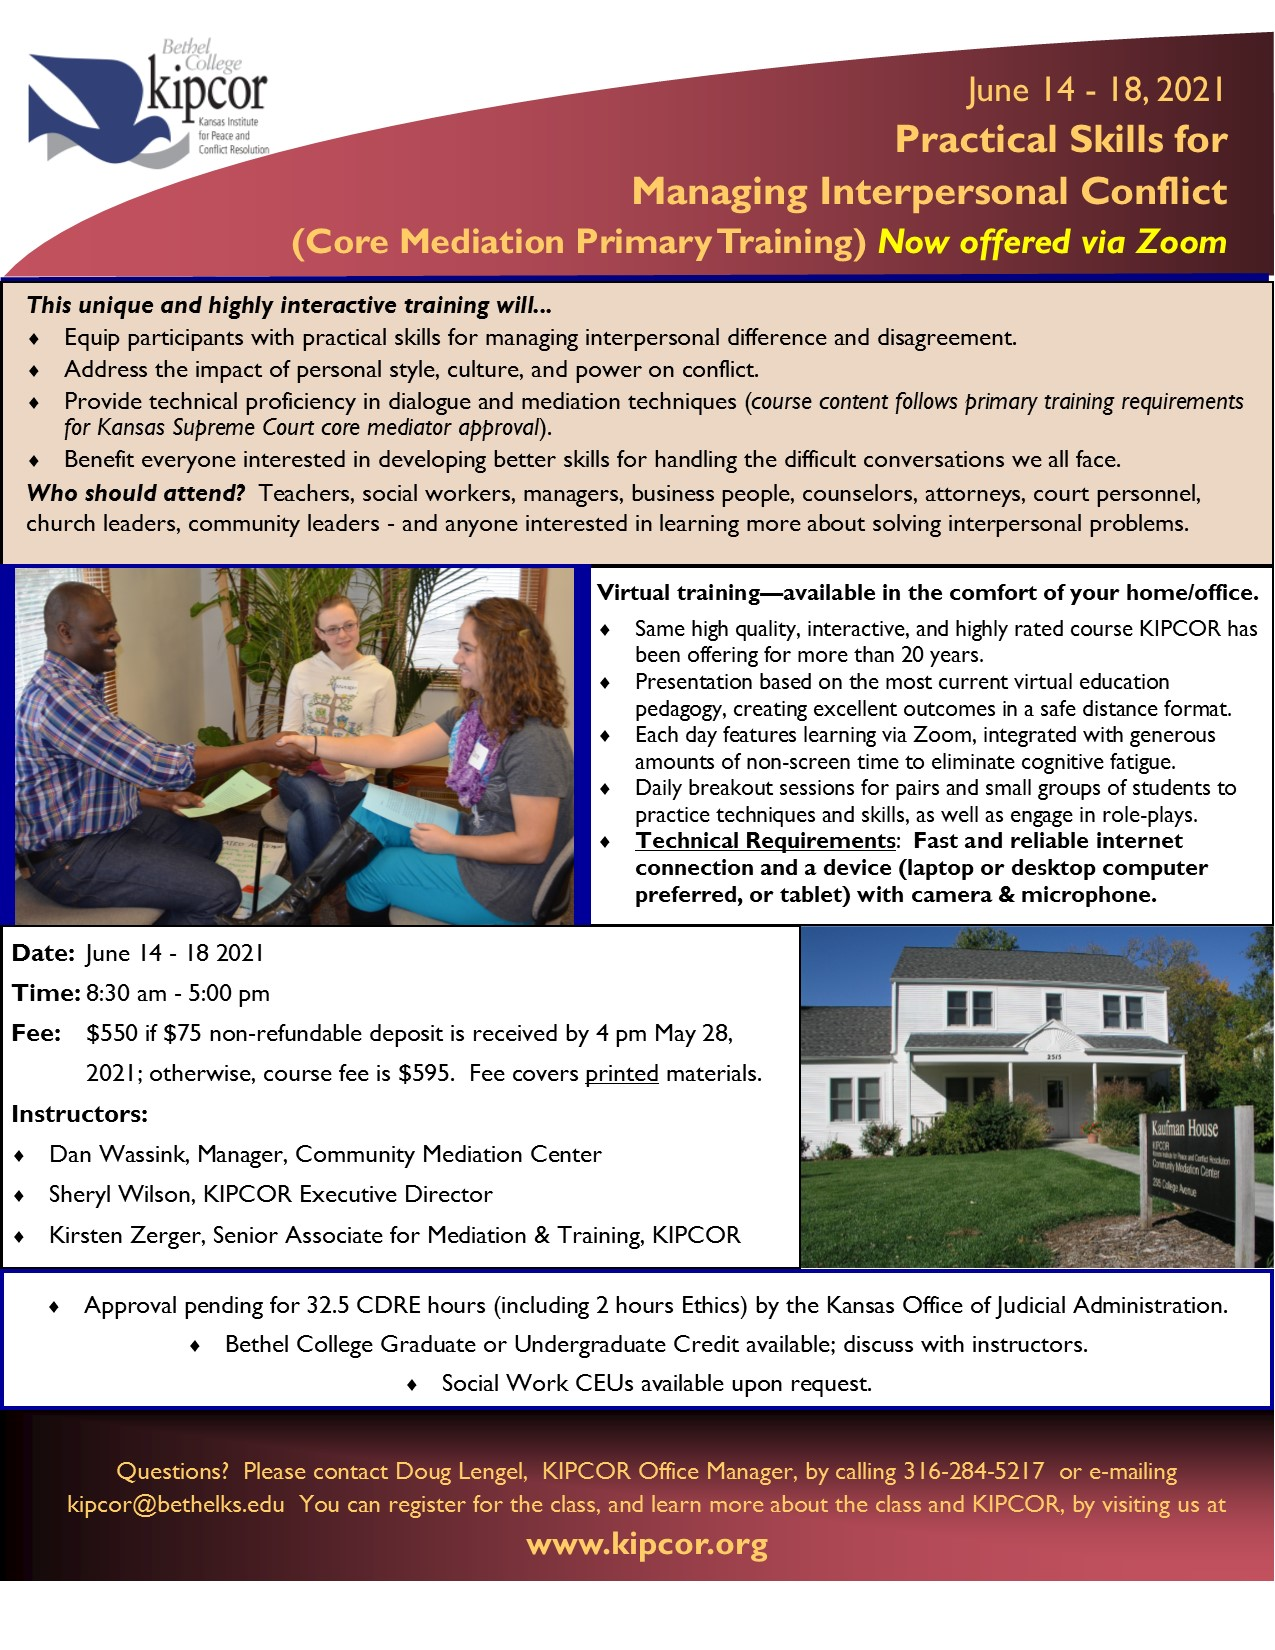 Summer Institute:  Practical Skills for Managing Interpersonal Conflict (Core Mediation Primary Training) Via Zoom June 2021